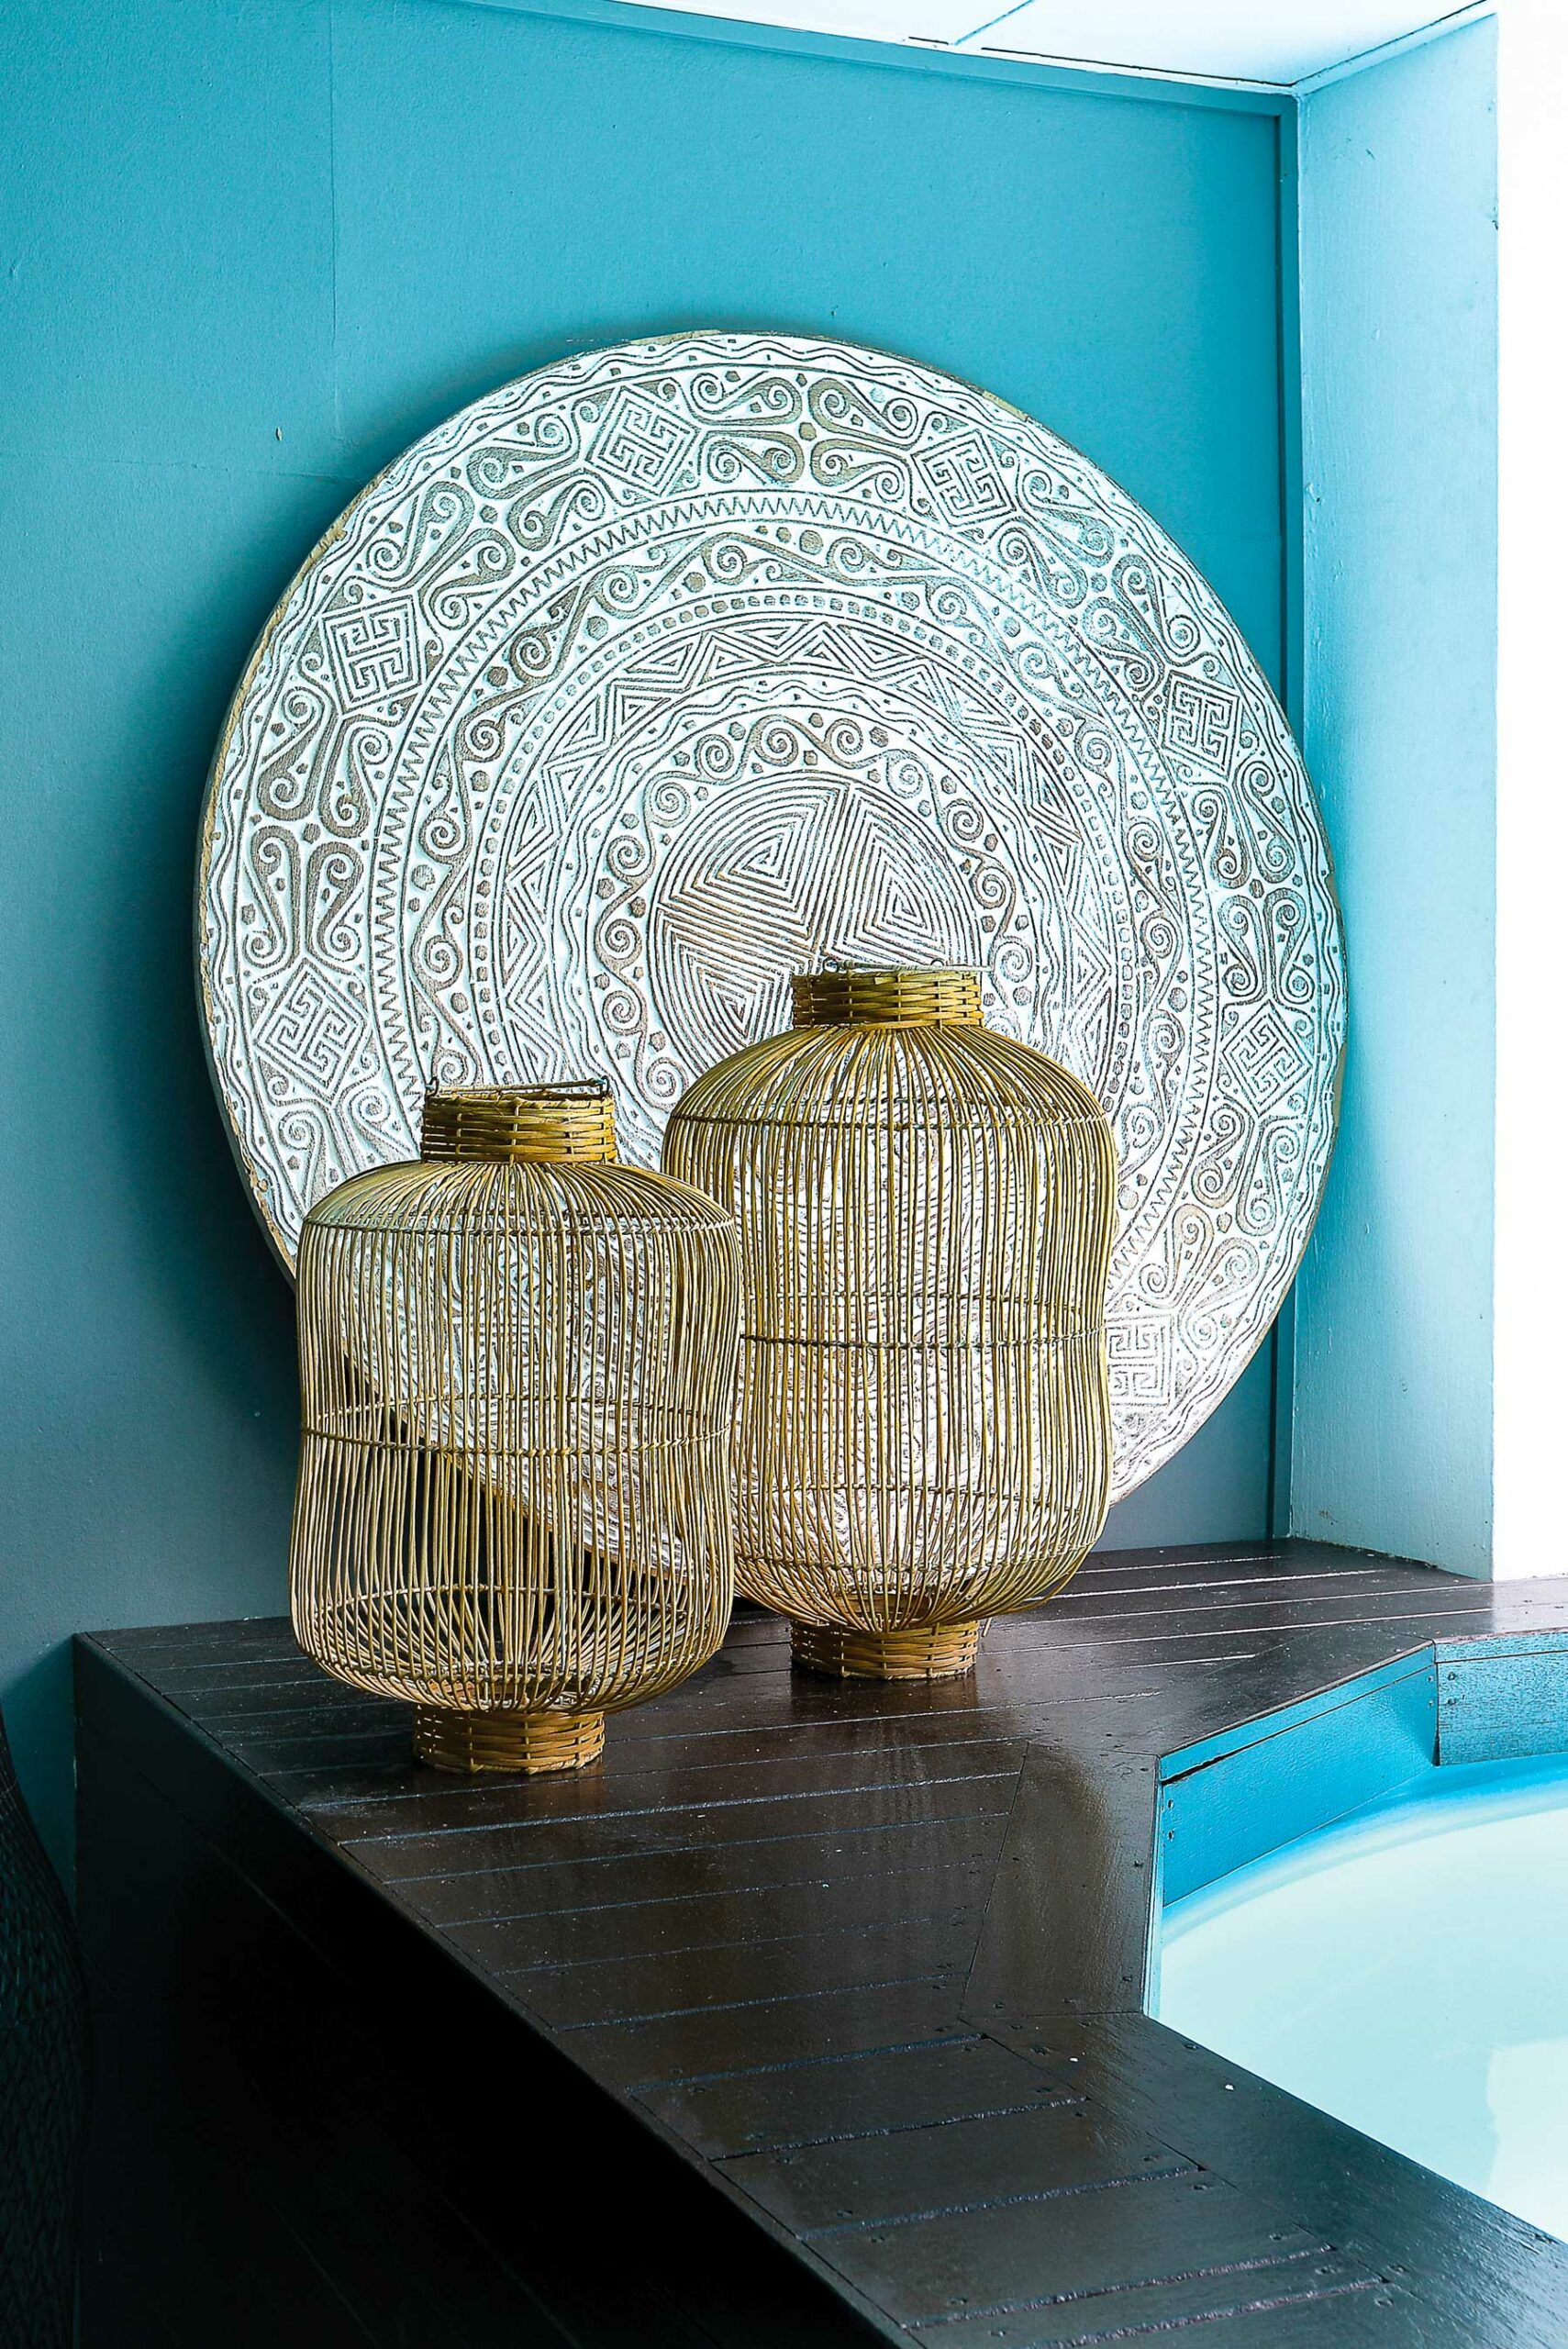 cane lamp, plunge pool